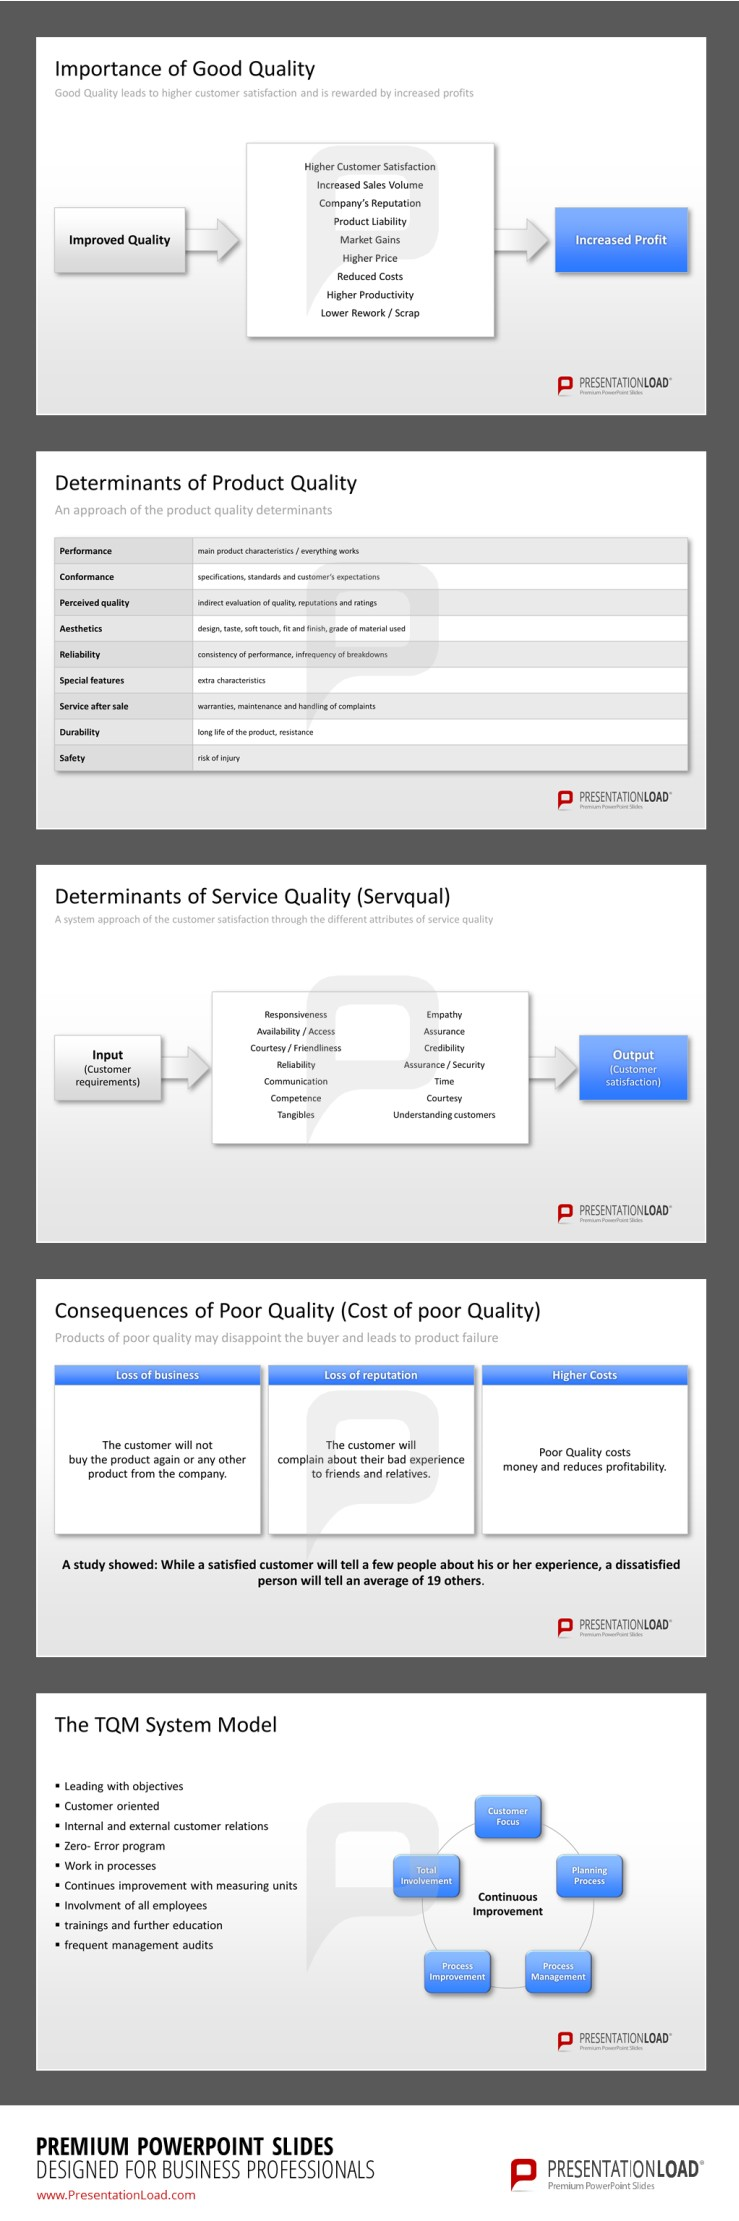 Total quality management powerpoint templates for presenting the total quality management powerpoint templates for presenting the importance and the determinants of quality and toneelgroepblik Choice Image